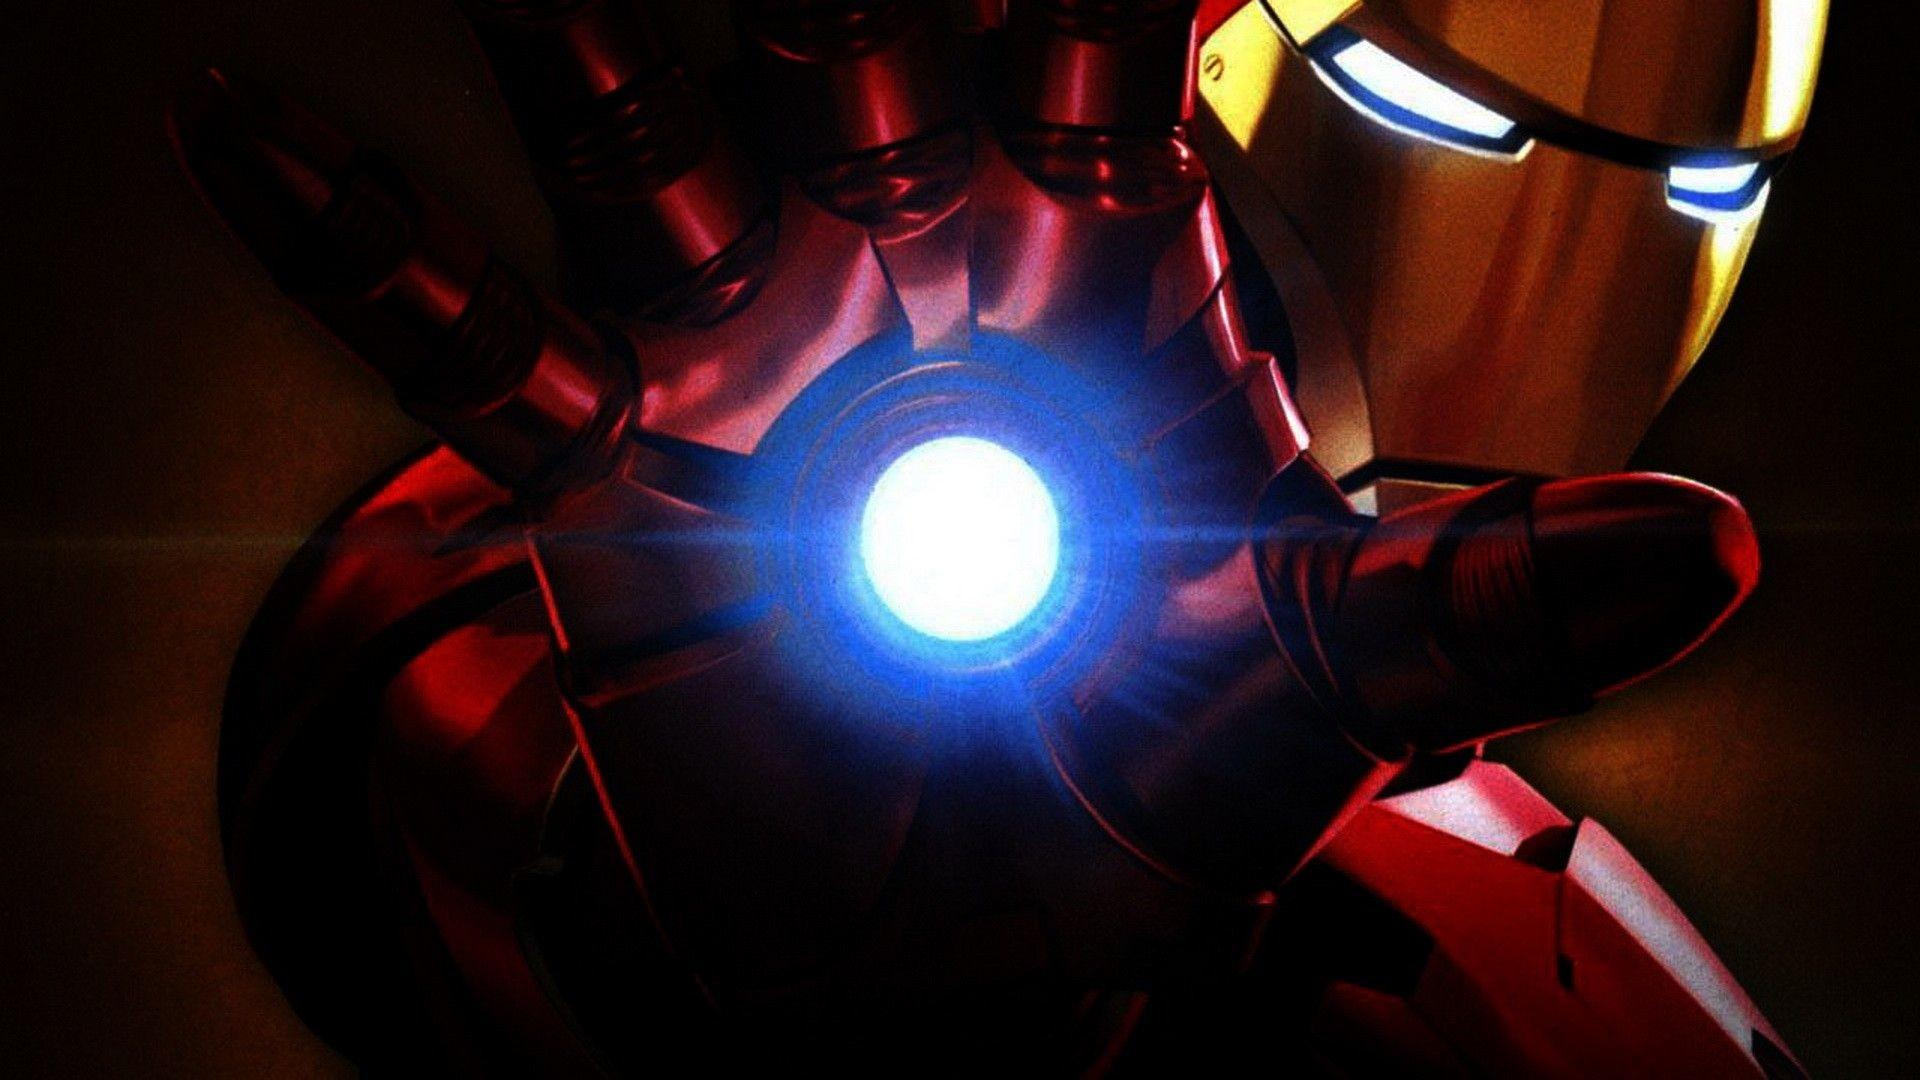 Iron Man Symbol Wallpapers - Wallpaper Cave